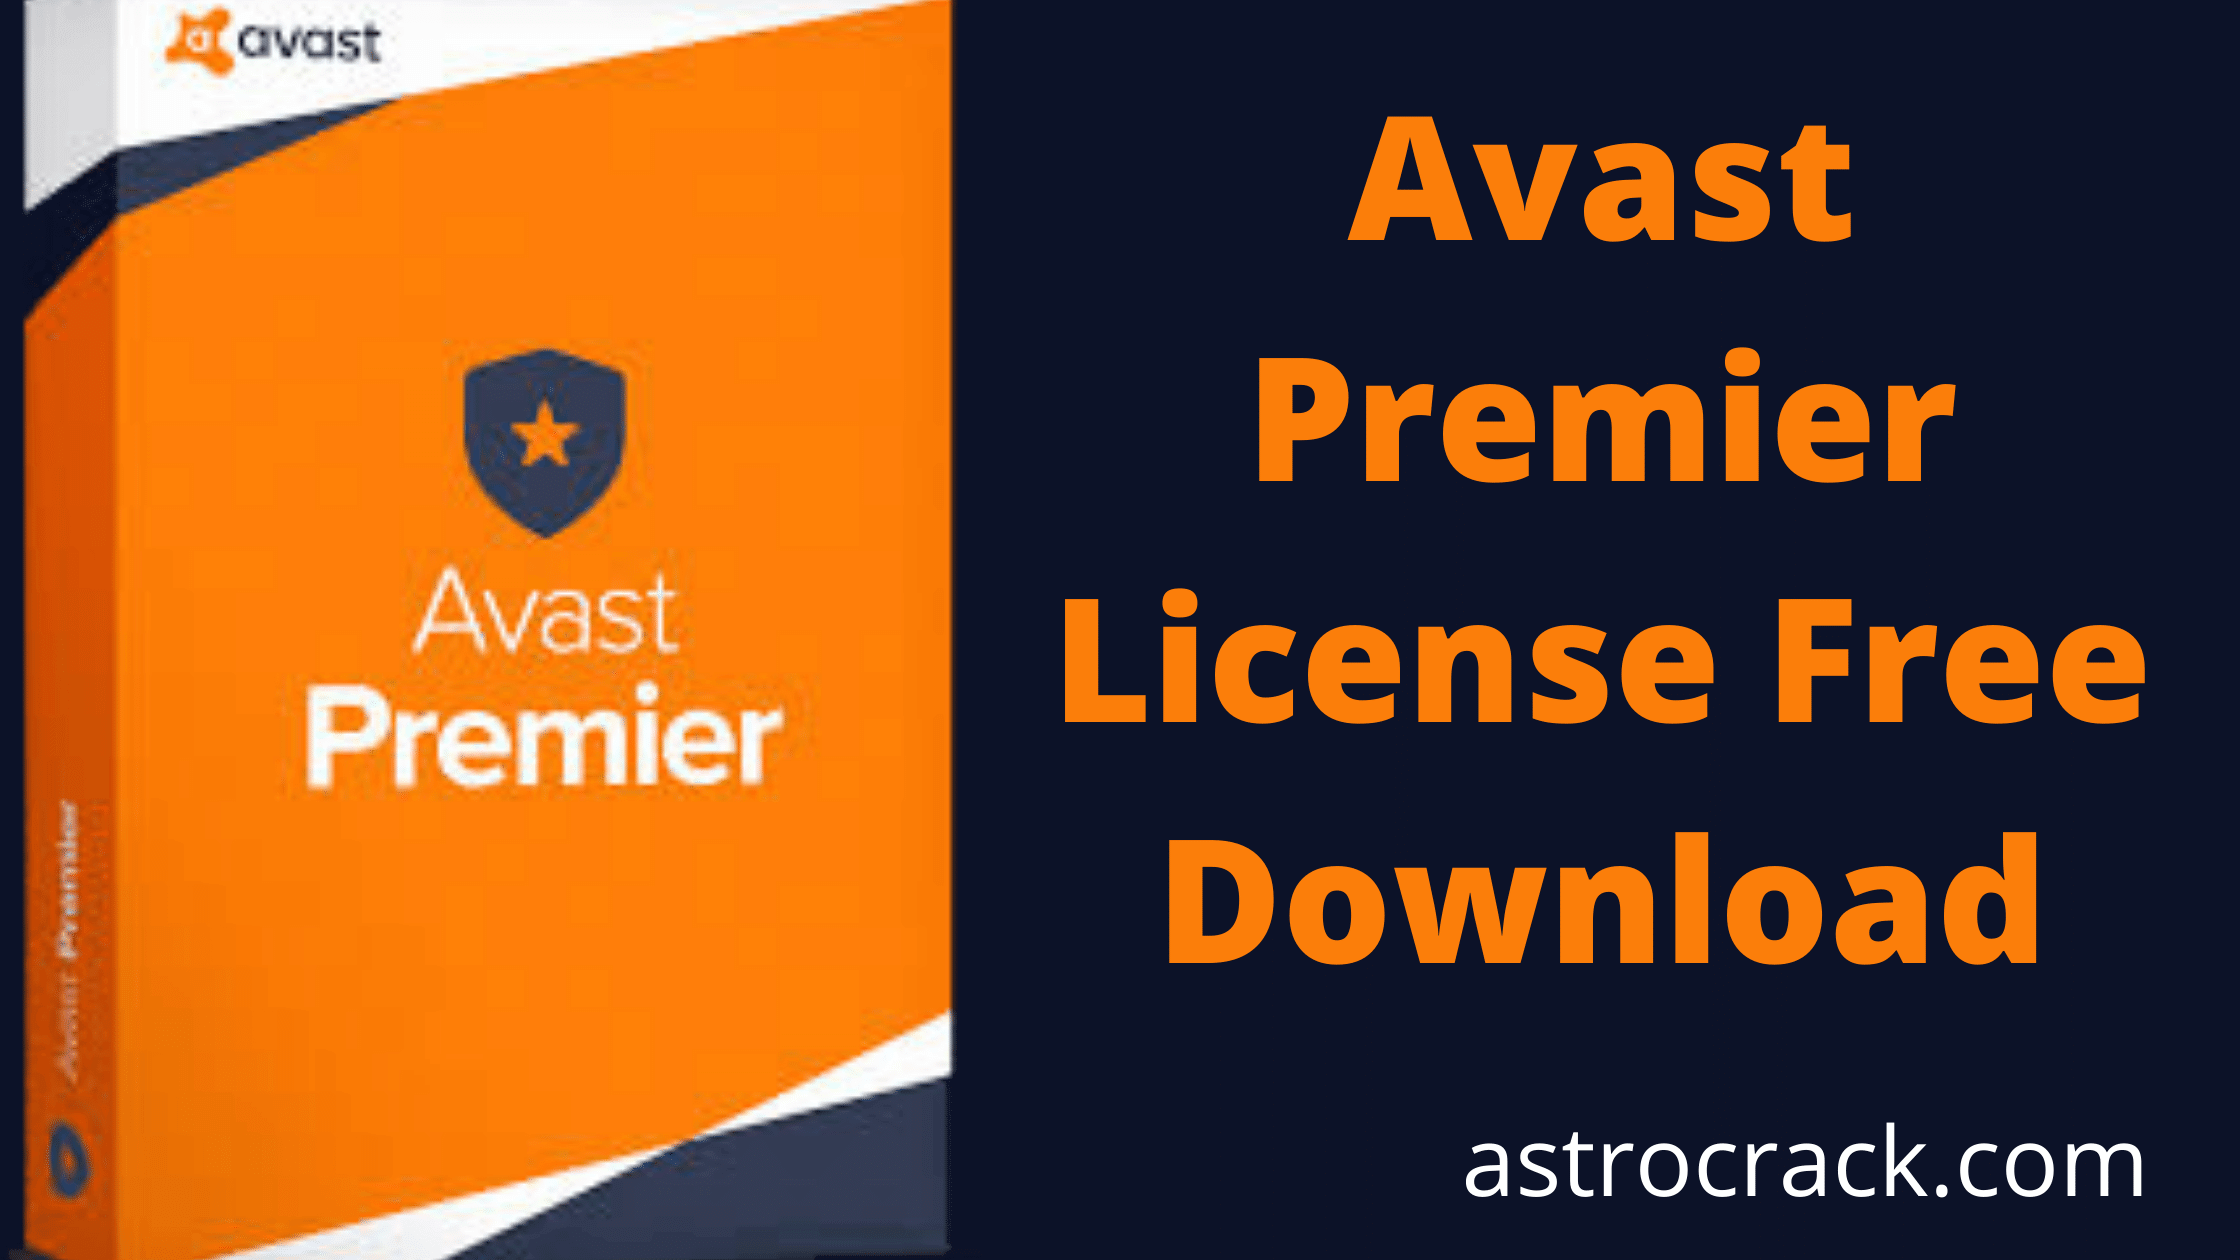 Avast Premier, Avast Premier crack, Avast Premier crack download, Avast Premier Crack patched, Avast Premier download